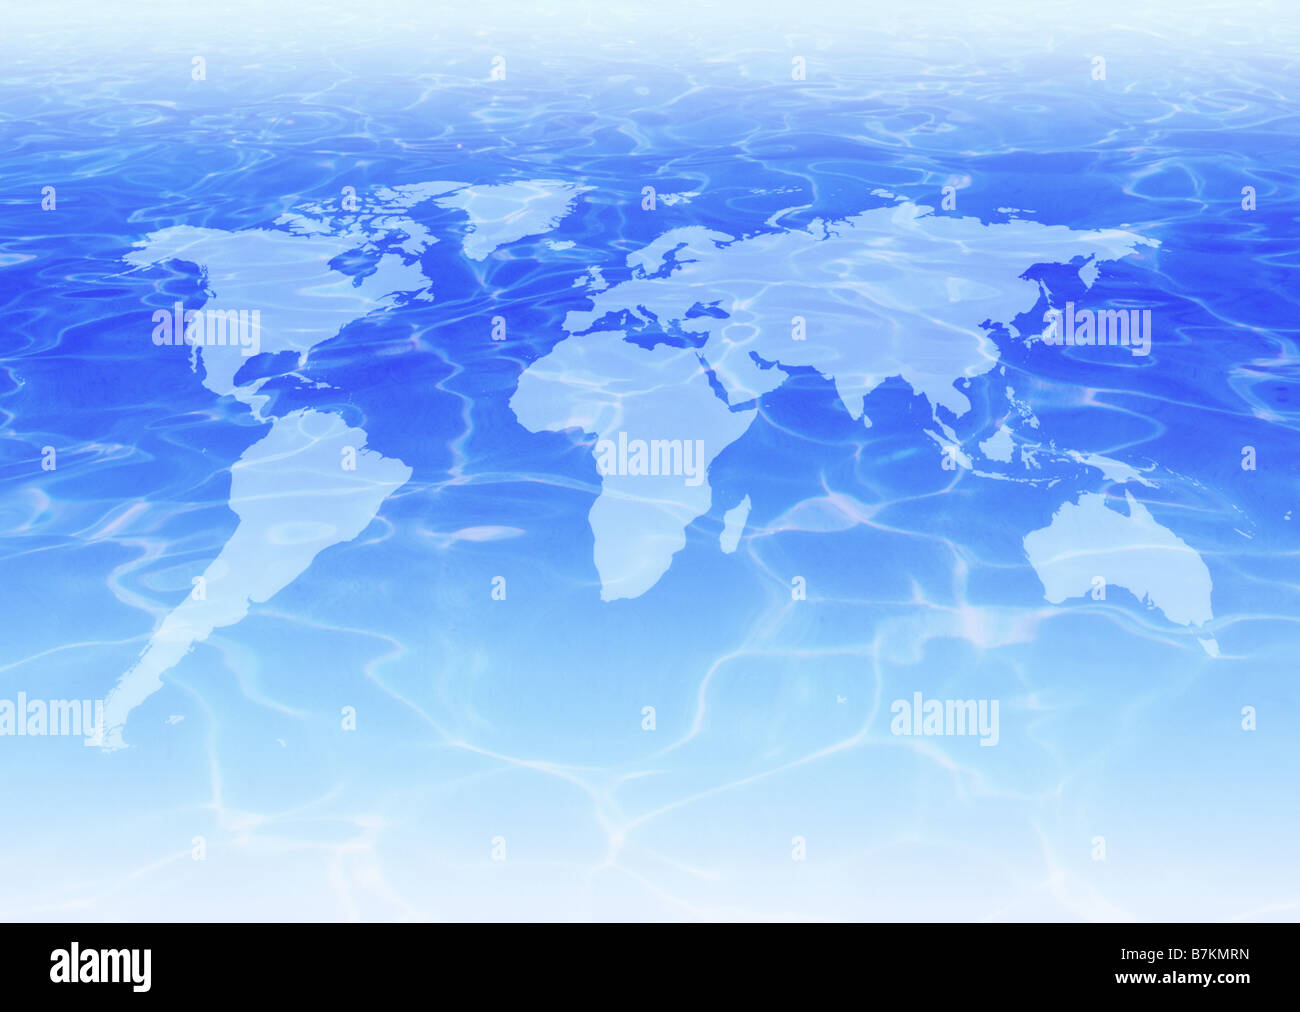 Water surface and world map - Stock Image